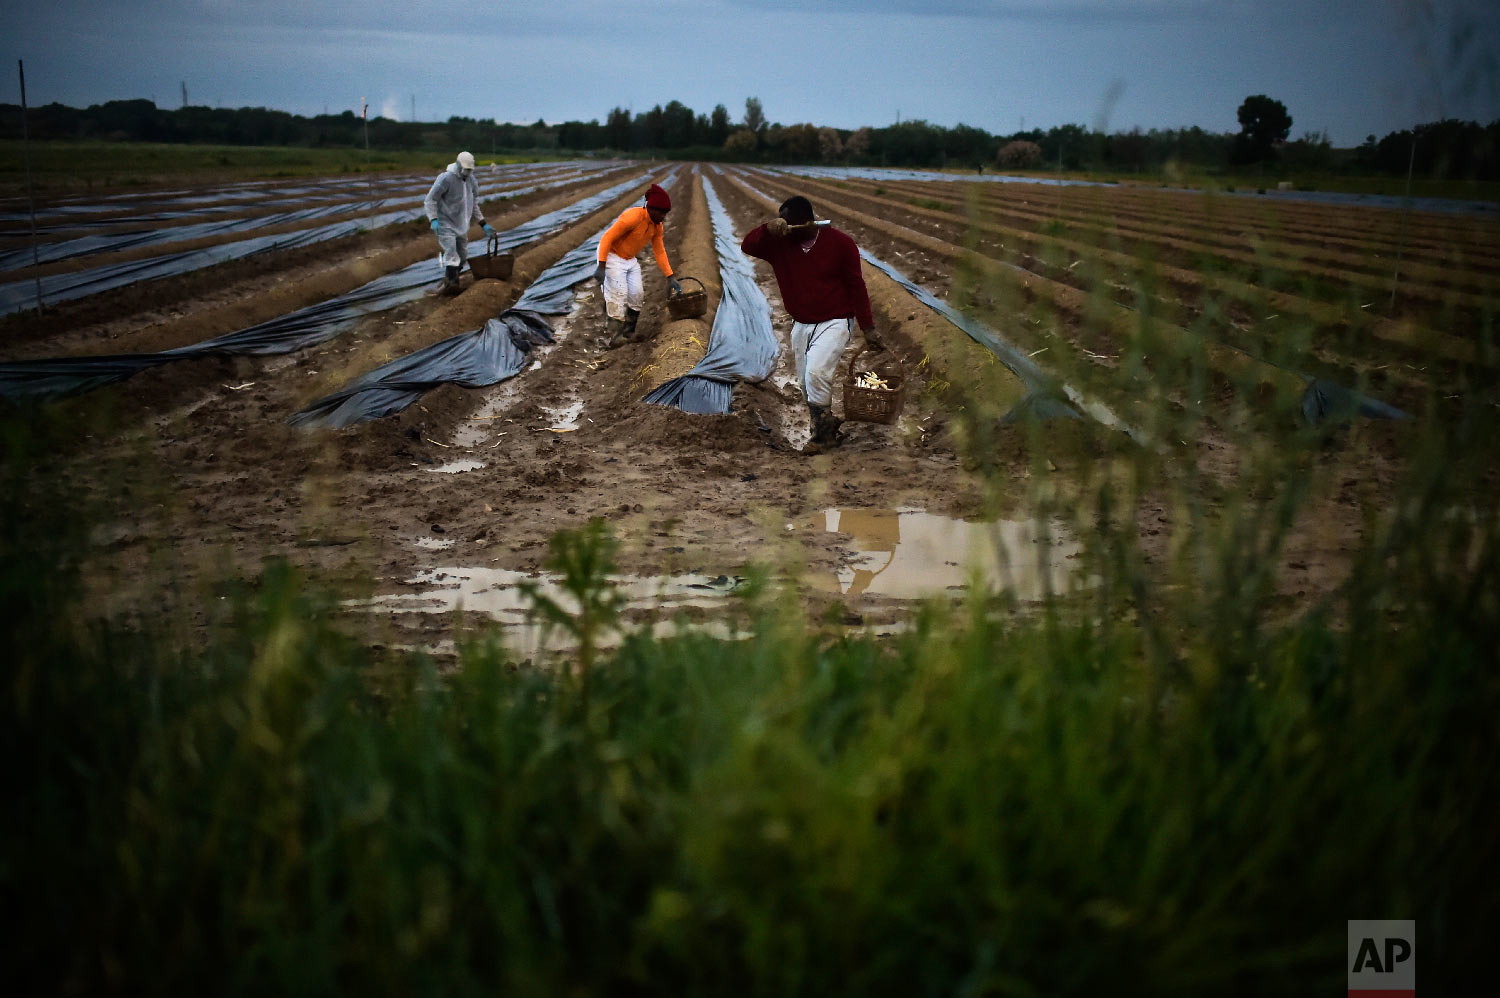 Seasonal workers collect white asparagus from a field in Caparroso, around 85 km (52 miles) from Pamplona, northern Spain on Thursday, May 31, 2018. (AP Photo/Alvaro Barrientos)